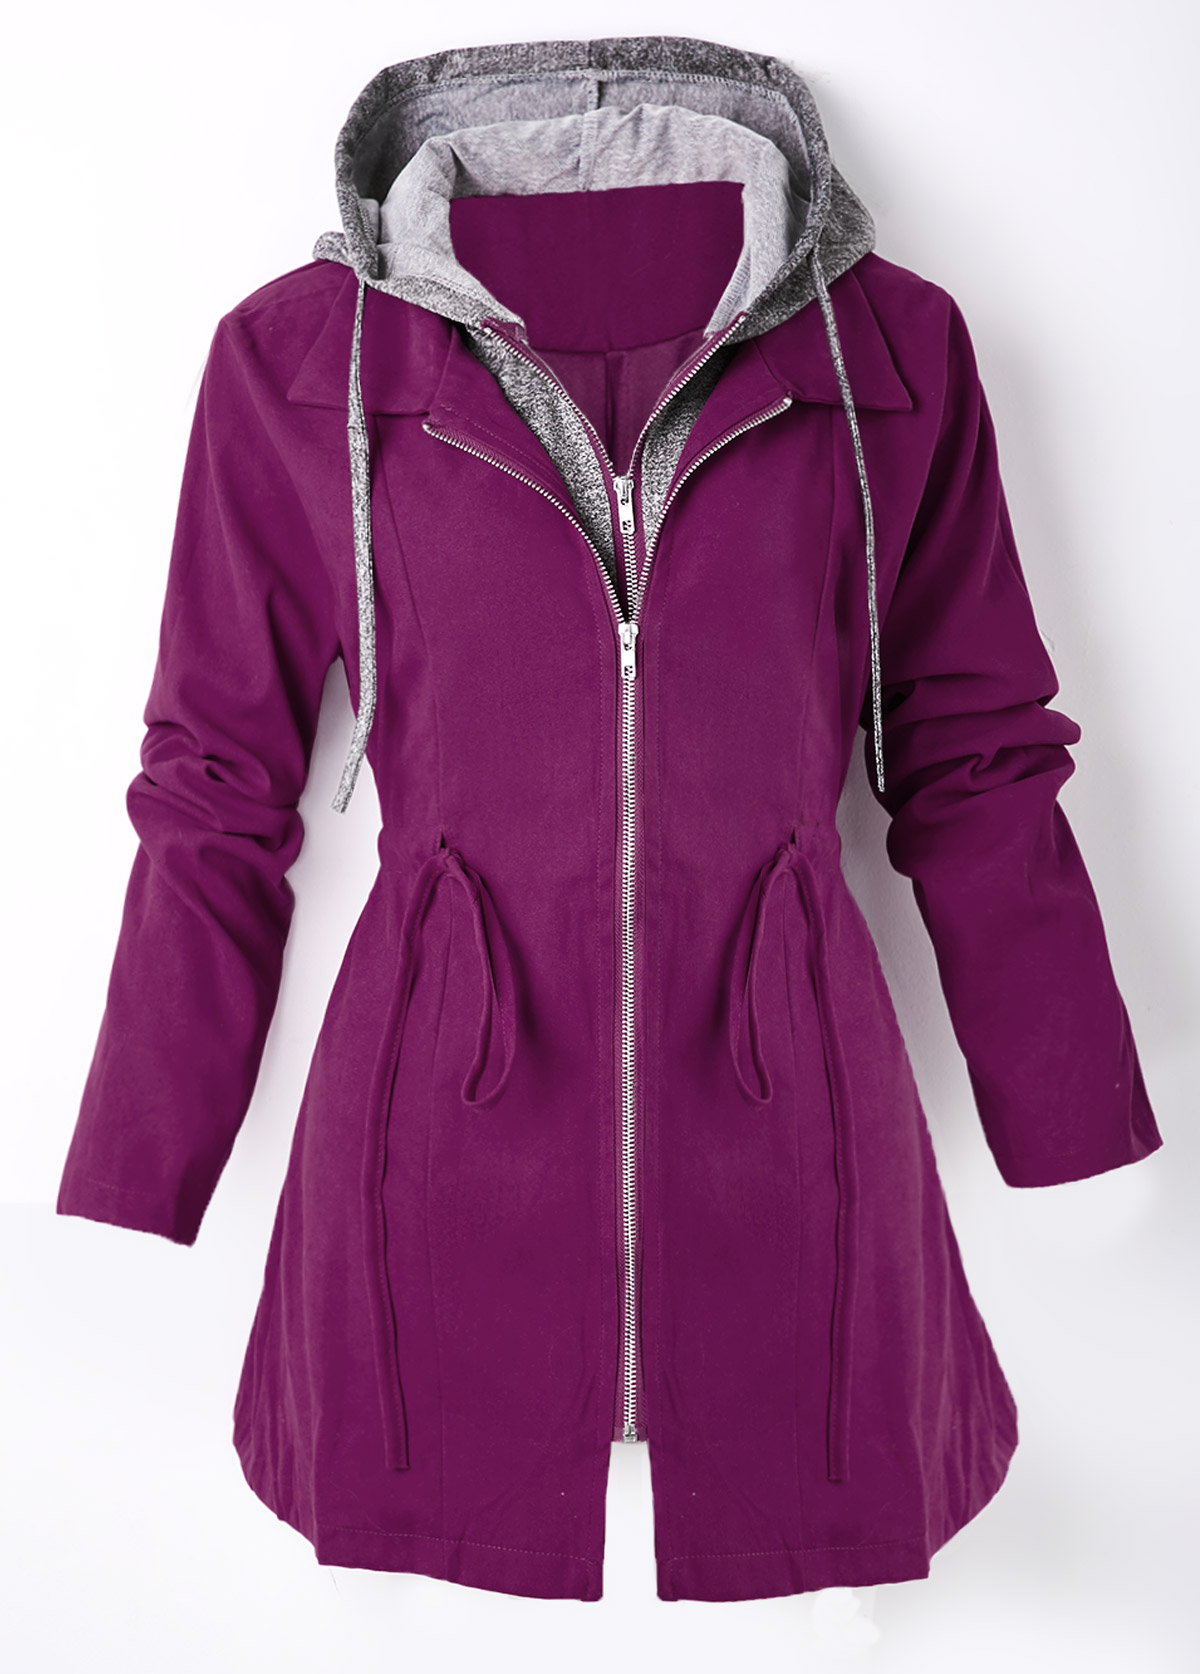 Hooded Collar Zipper Closure Drawstring Waist Jacket